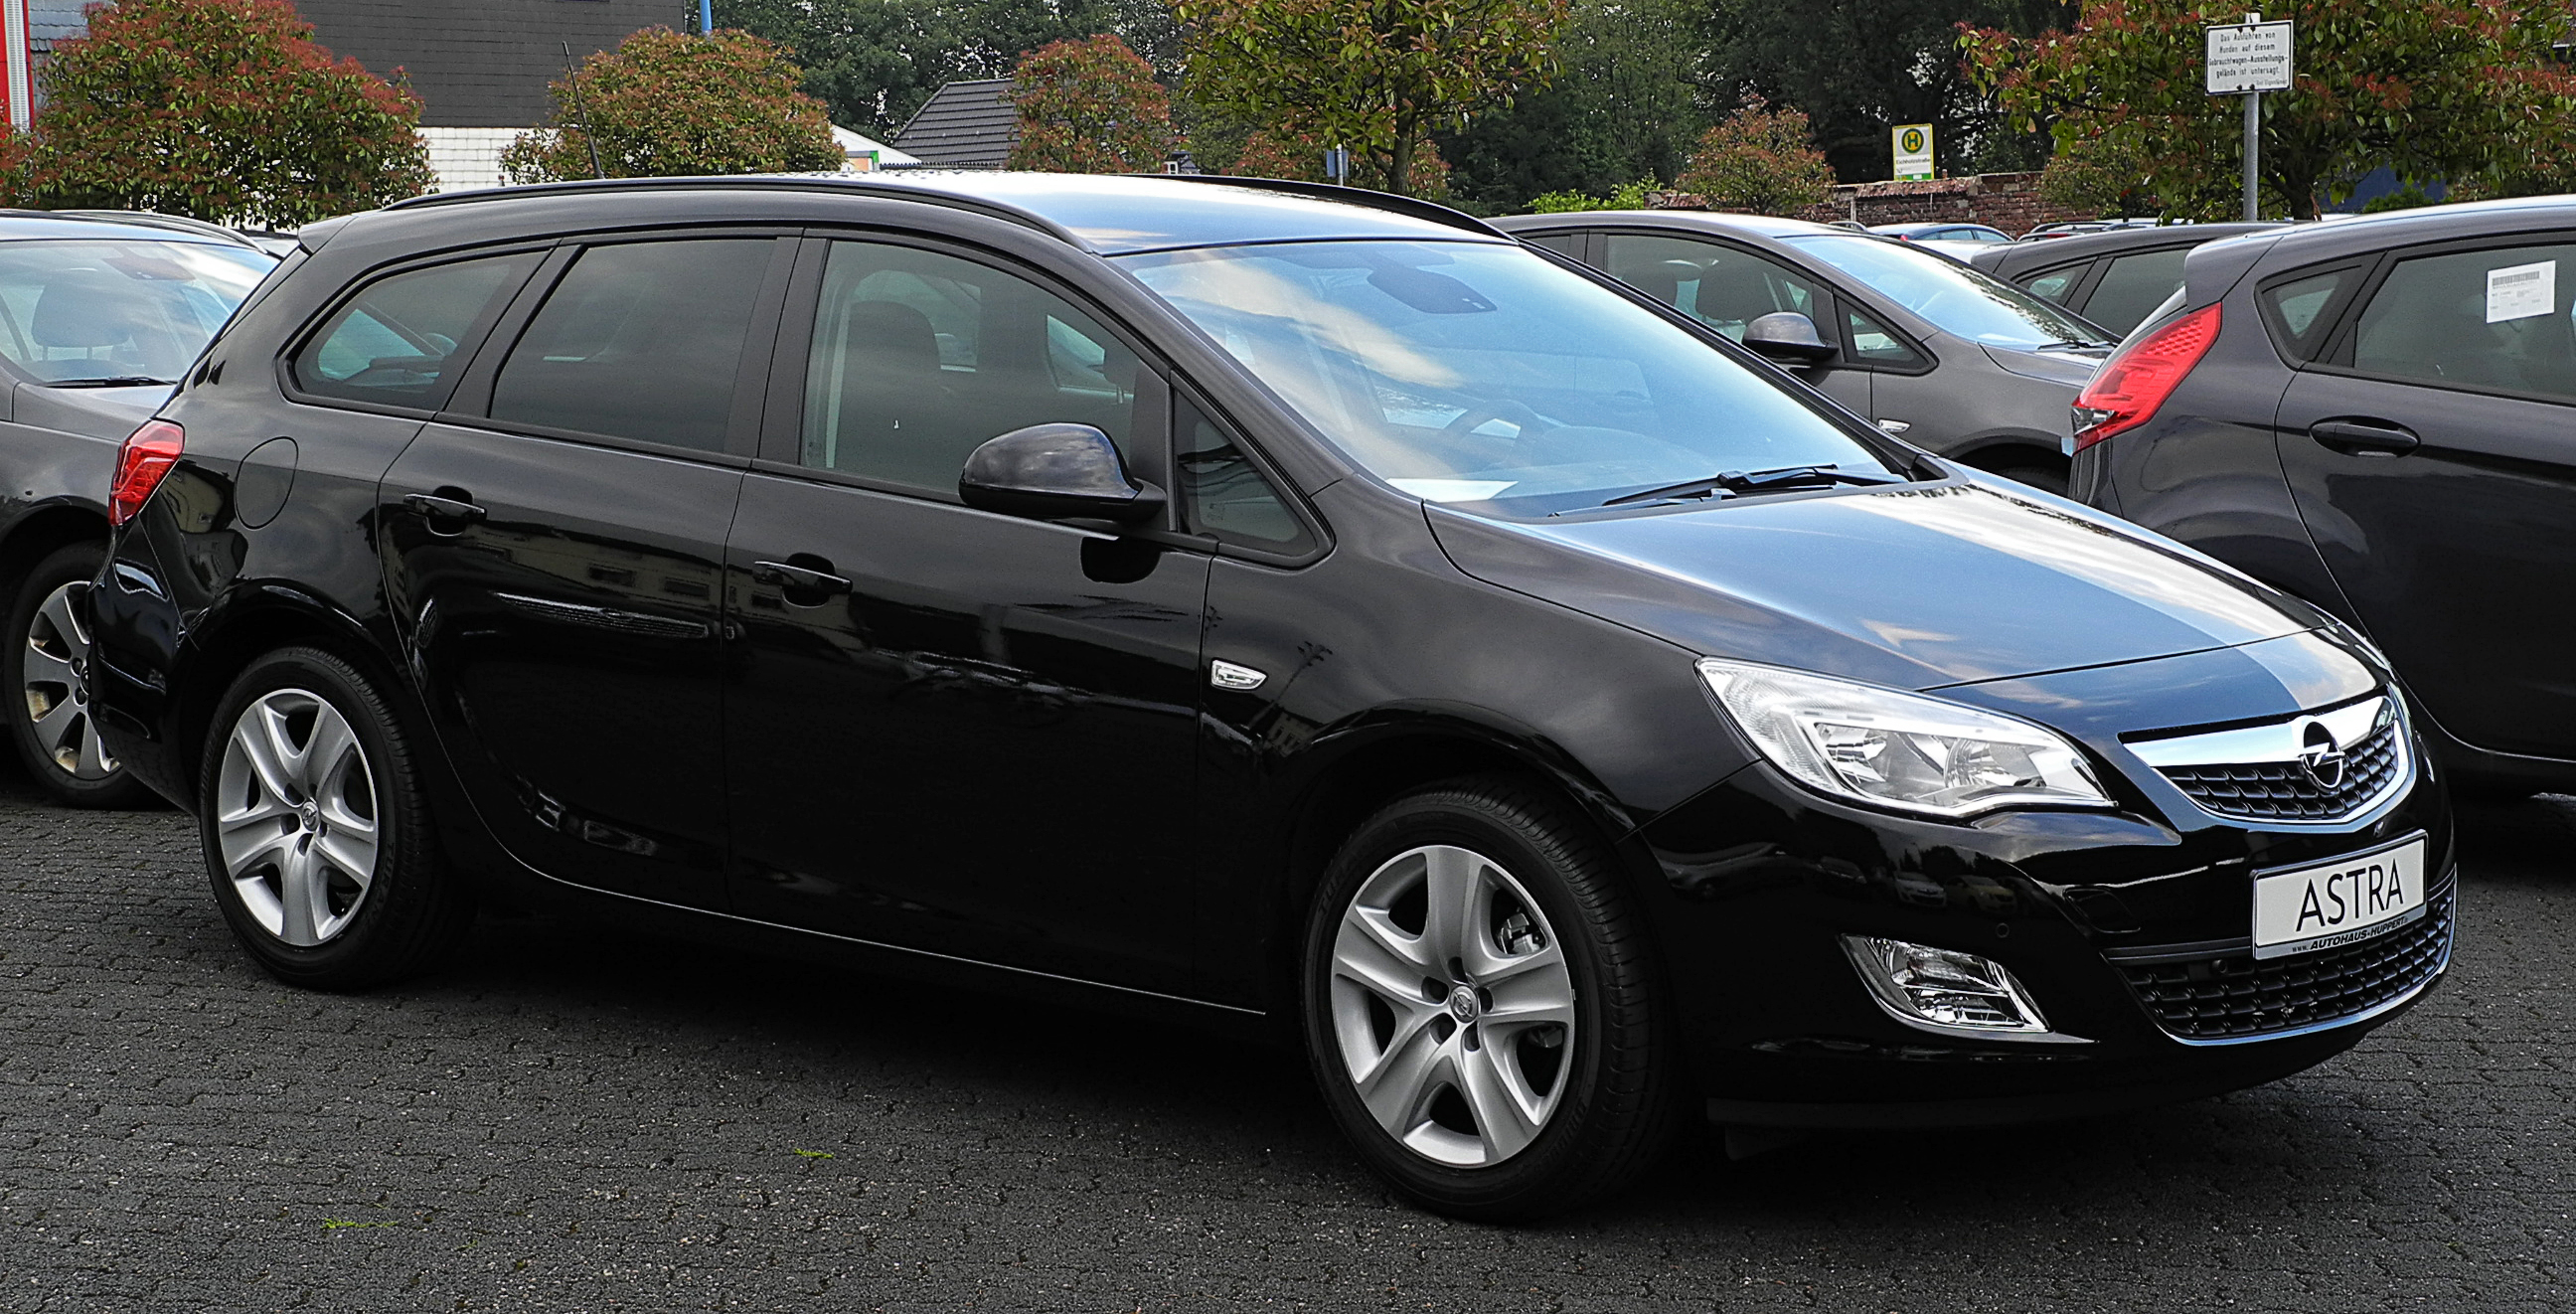 Delightful File:Opel Astra Sports Tourer 1.6 Design Edition (J) U2013 Frontansicht (1